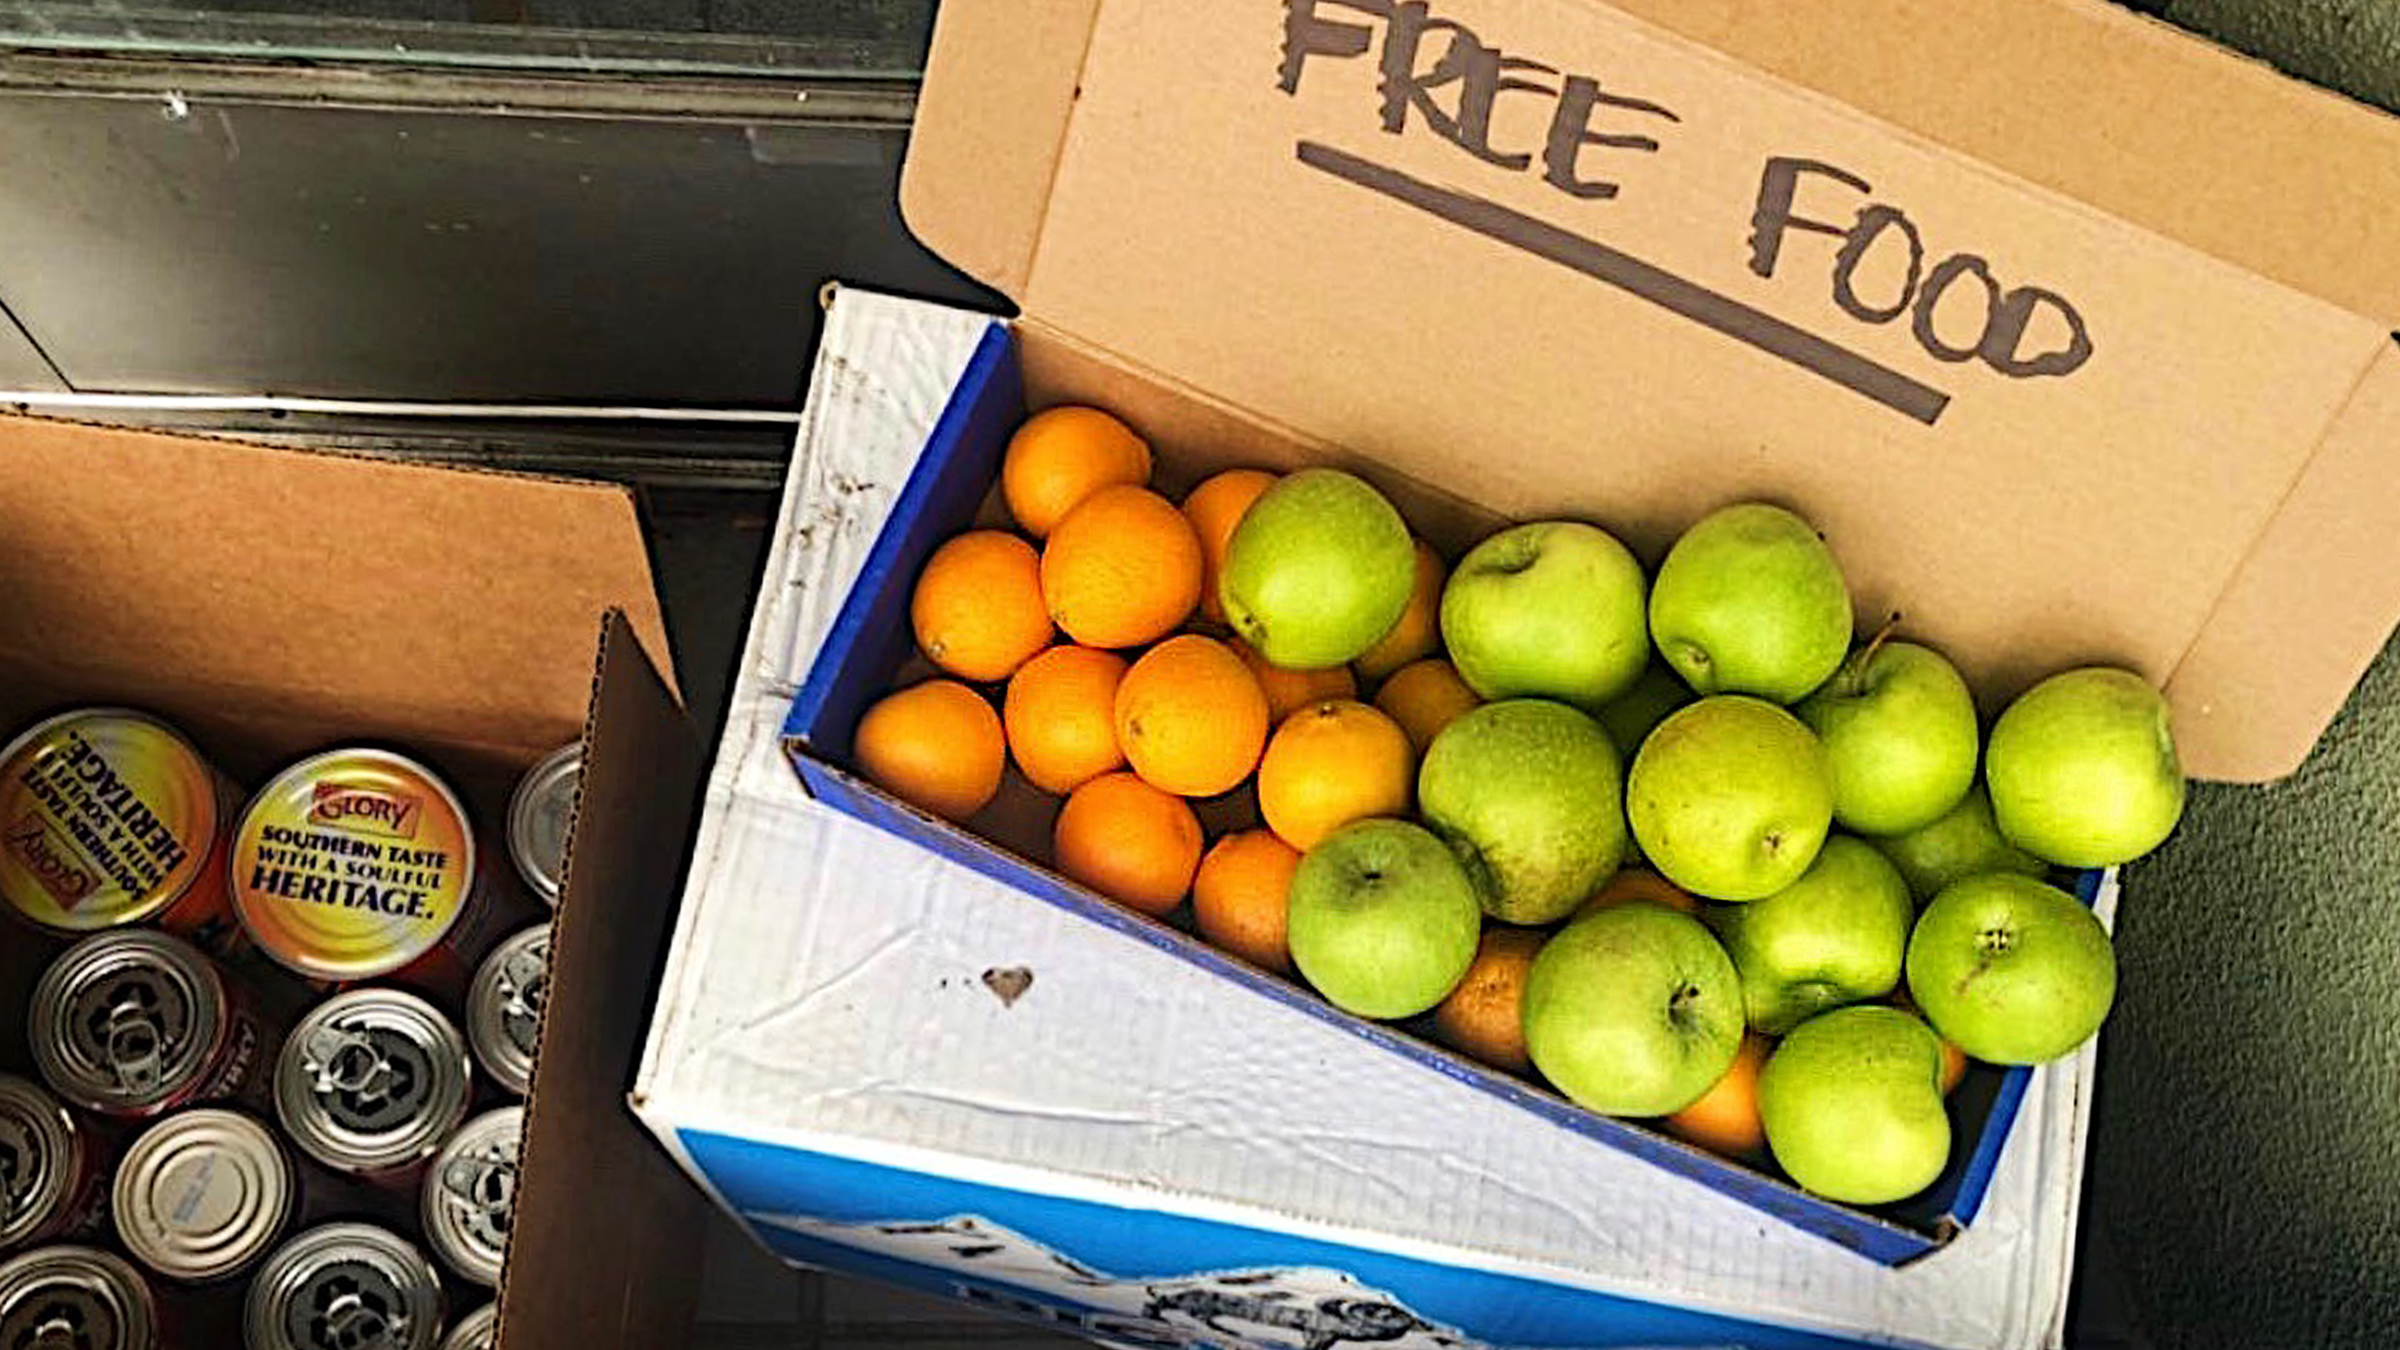 Communal pantries and fridges are sprouting up in L.A.